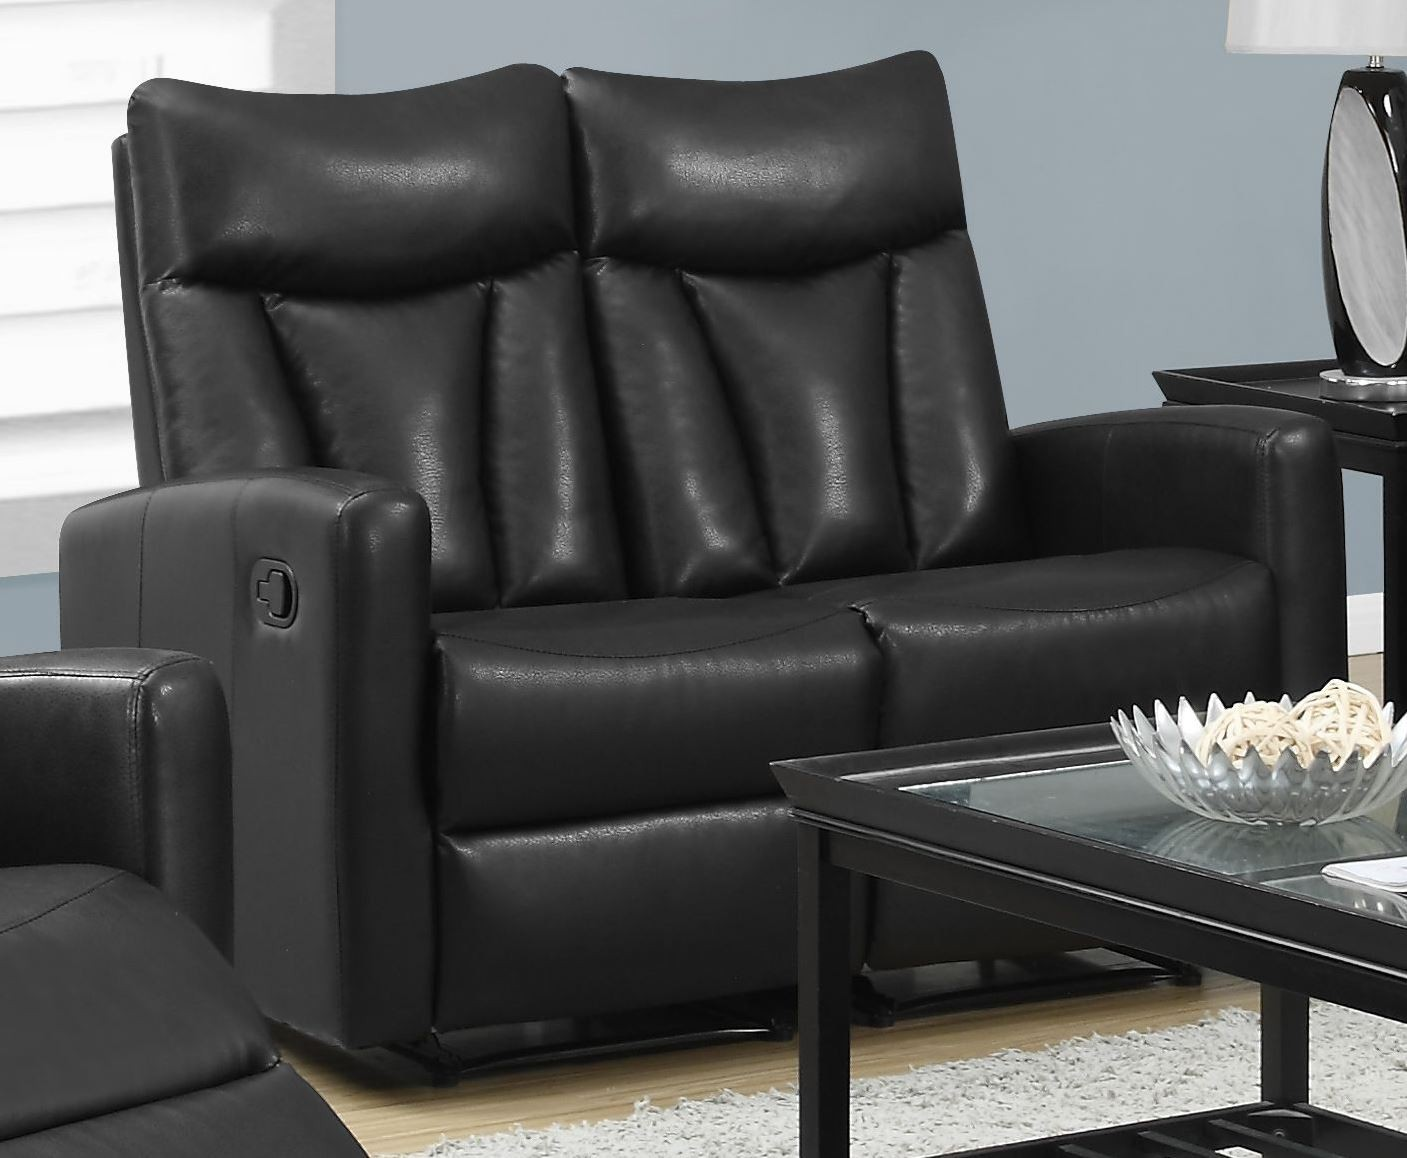 87bk 2 Black Bonded Leather Reclining Loveseat From Monarch Coleman Furniture